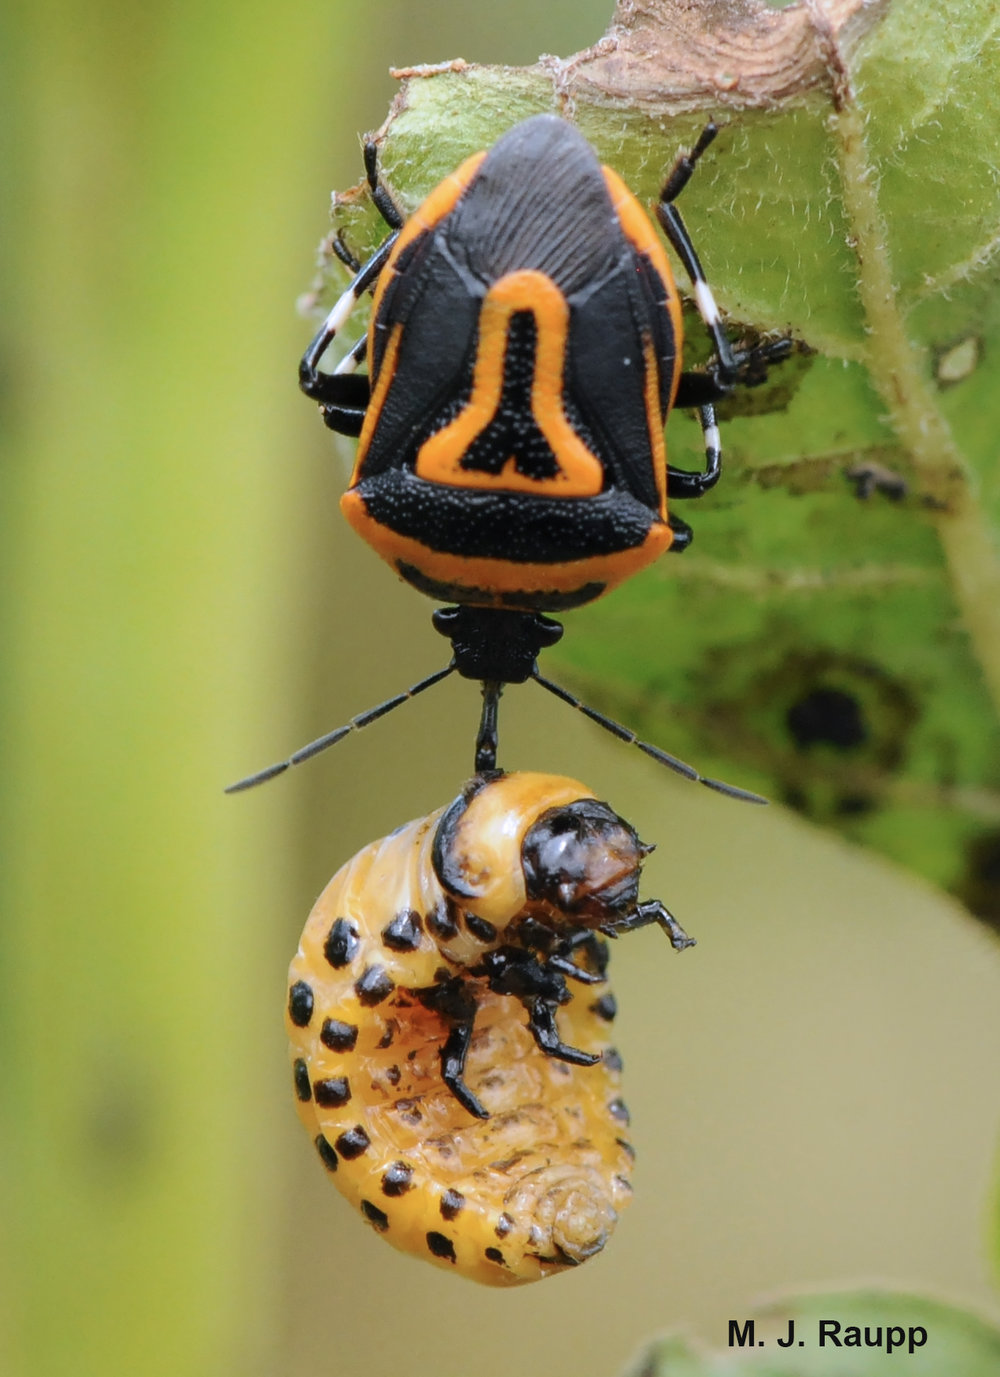 Bugs in orange and black, predator and prey: Two-spotted stink bug, Perillus bioculatus, and Colorado potato beetle, Leptinotarsa decemlineata